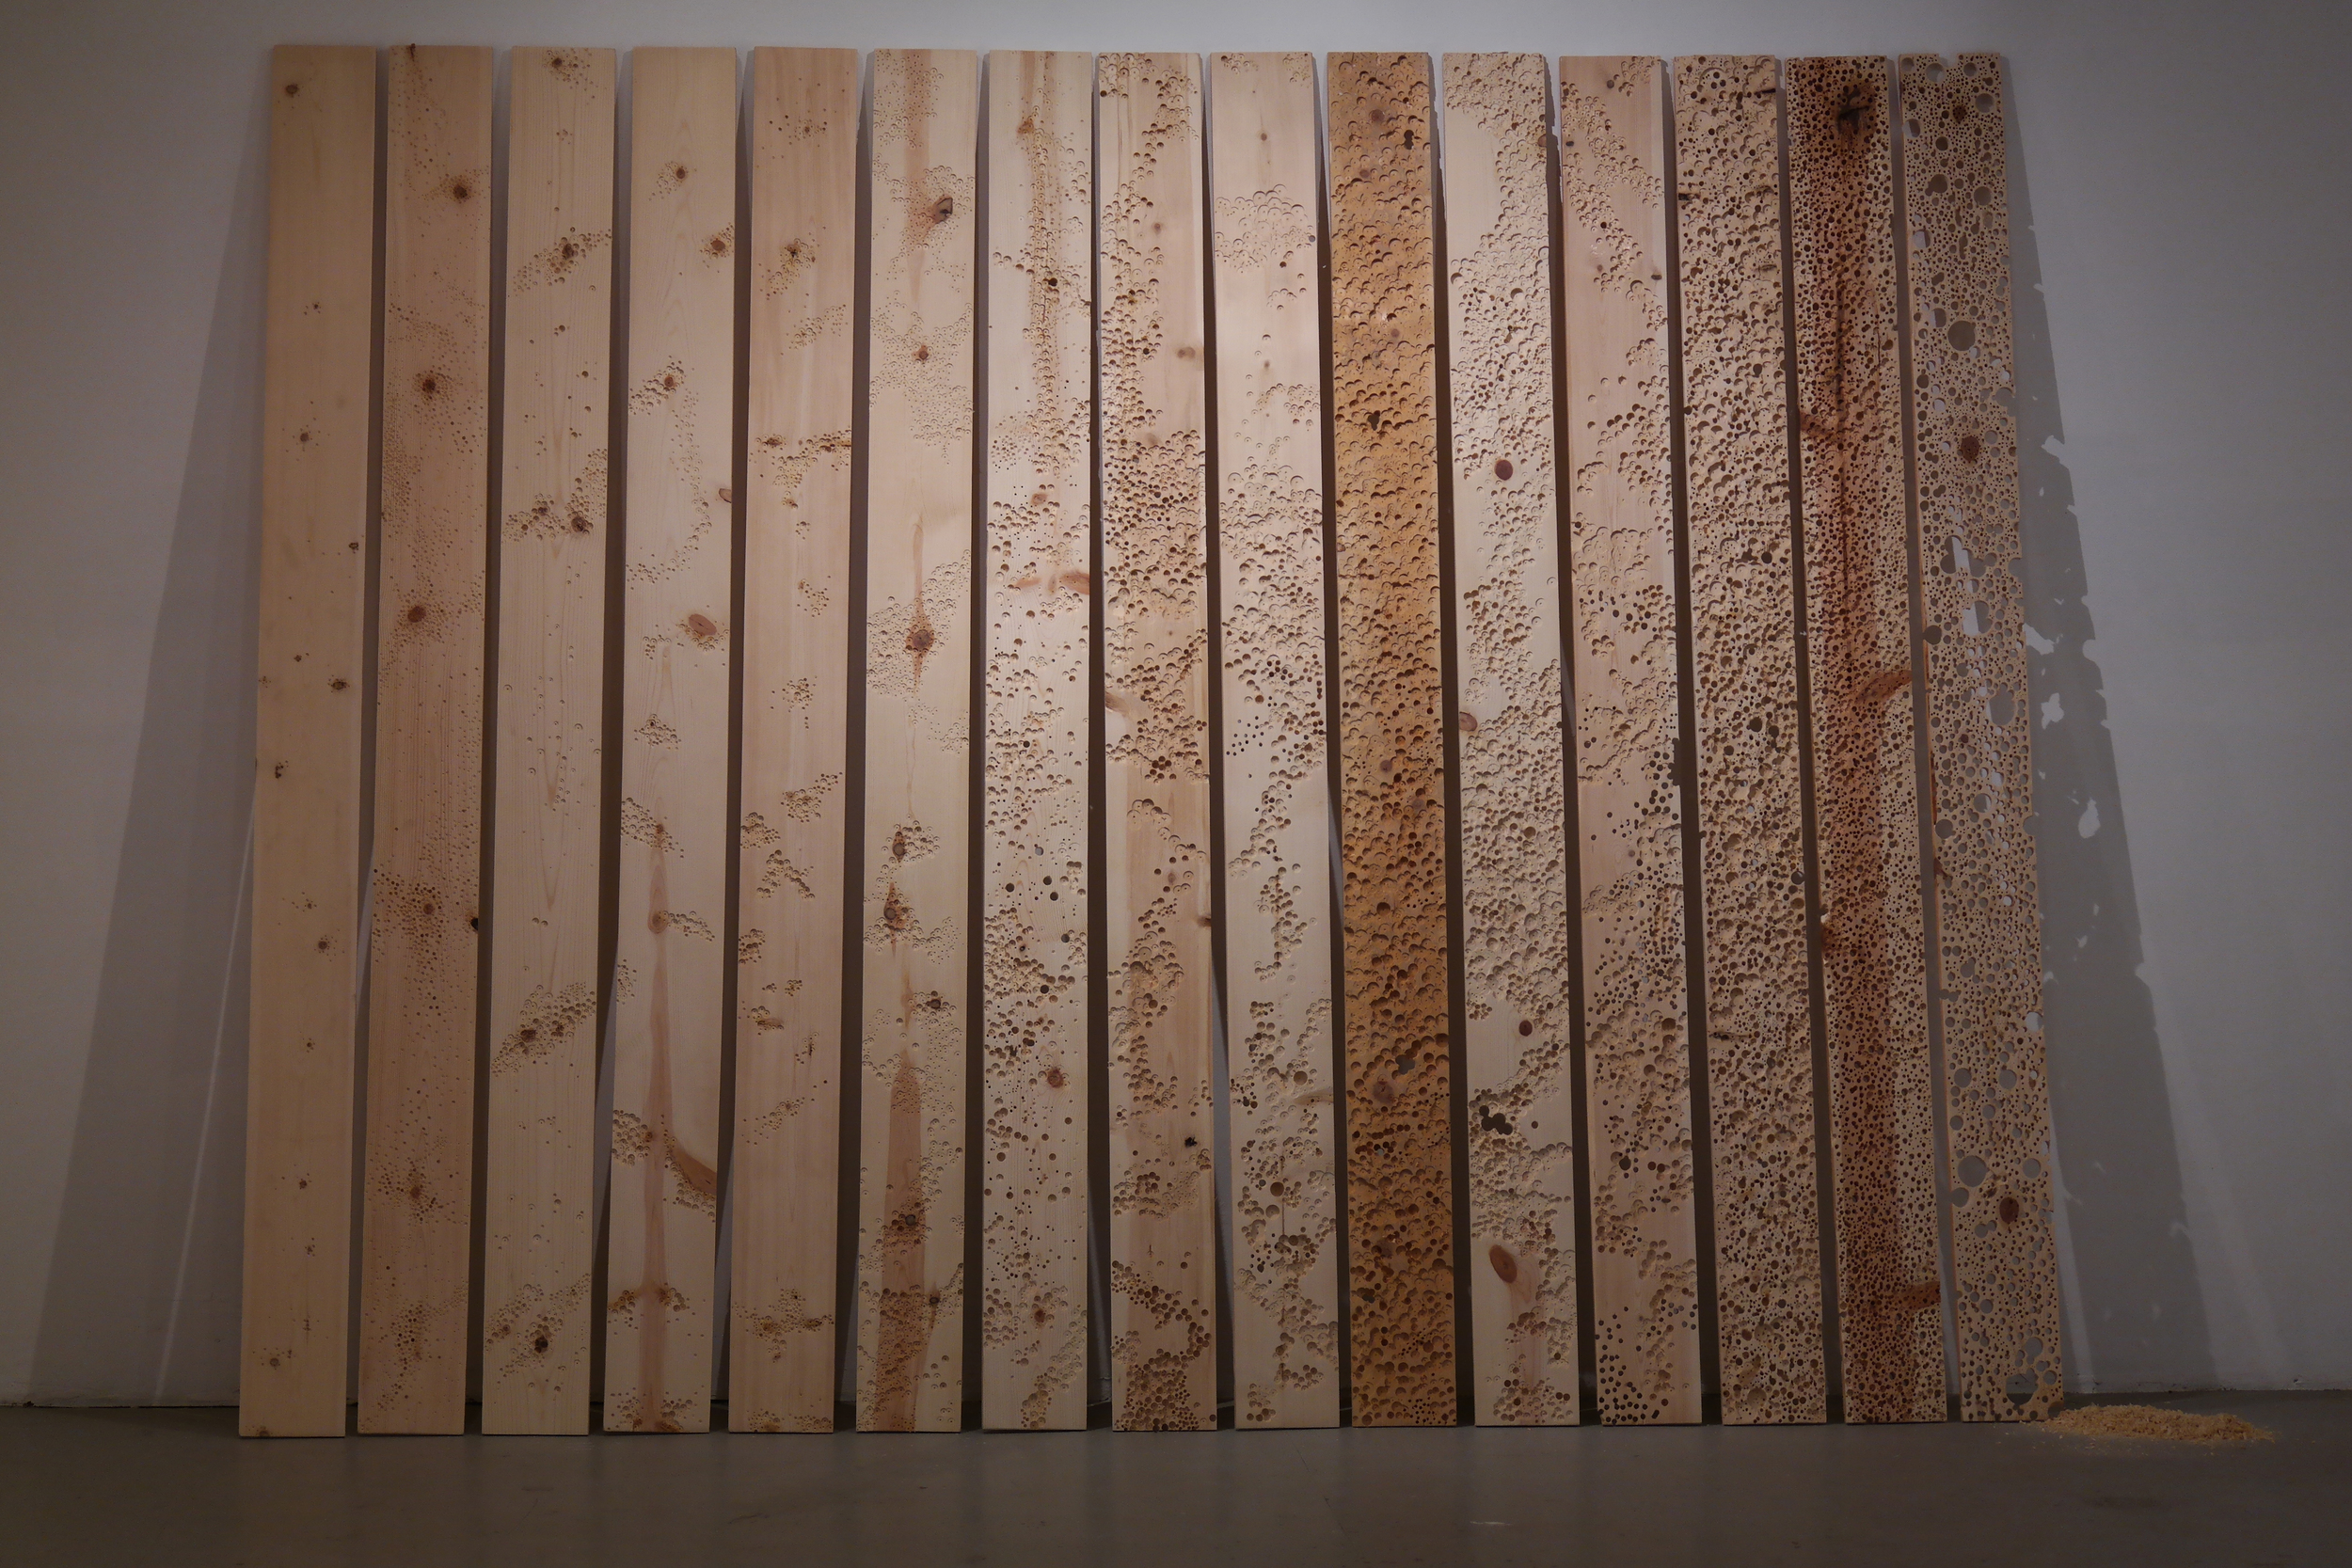 Close-up of the drilled wood panels